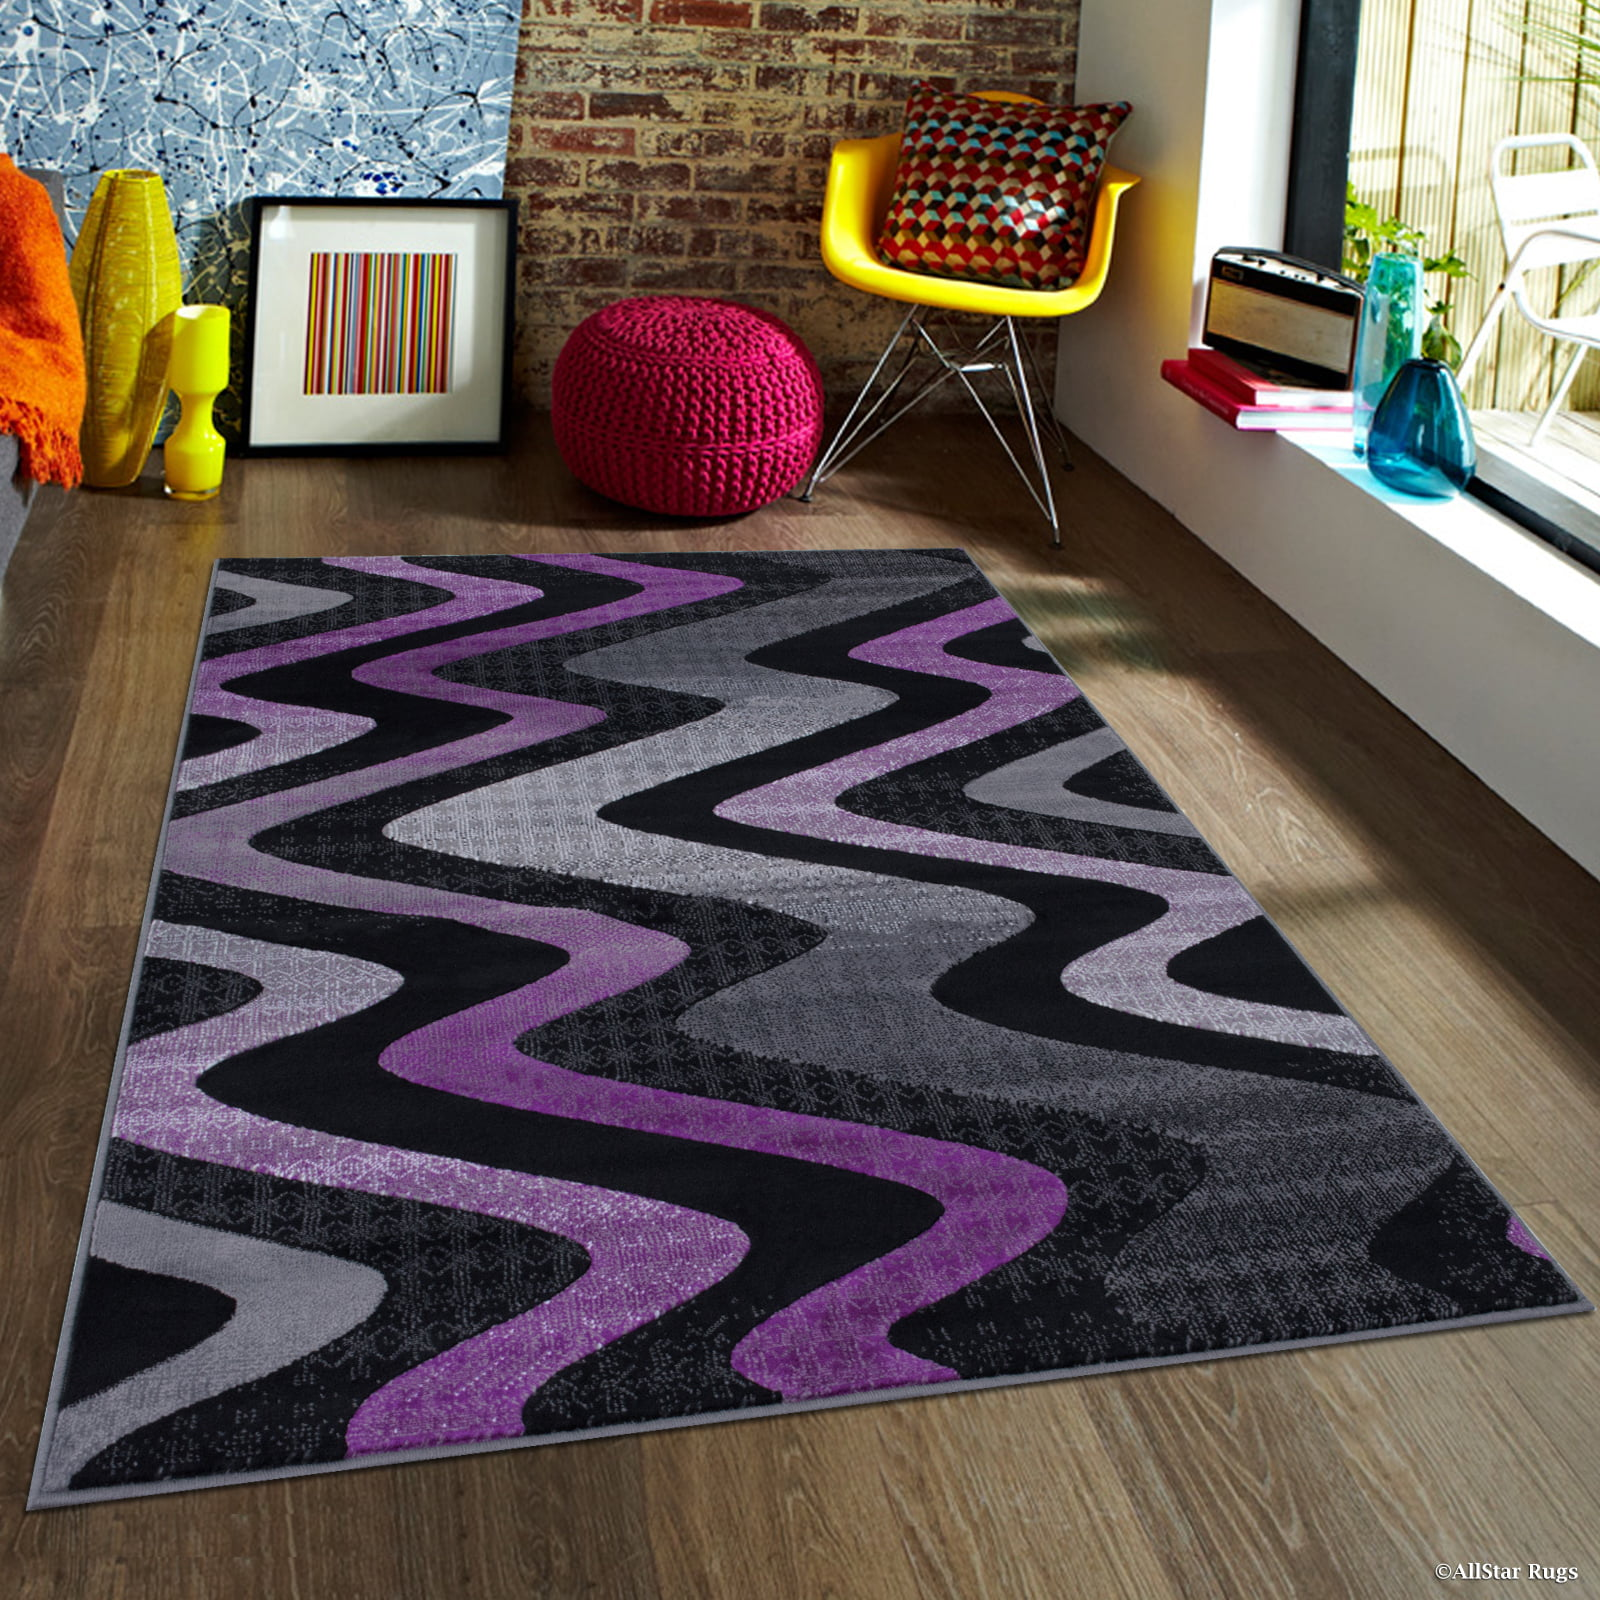 Purple Allstar Modern. Contemporary Woven Rug. Drop-Stitch Weave Technique. Carved Effect. Vivid Pop Colors... by Overstock